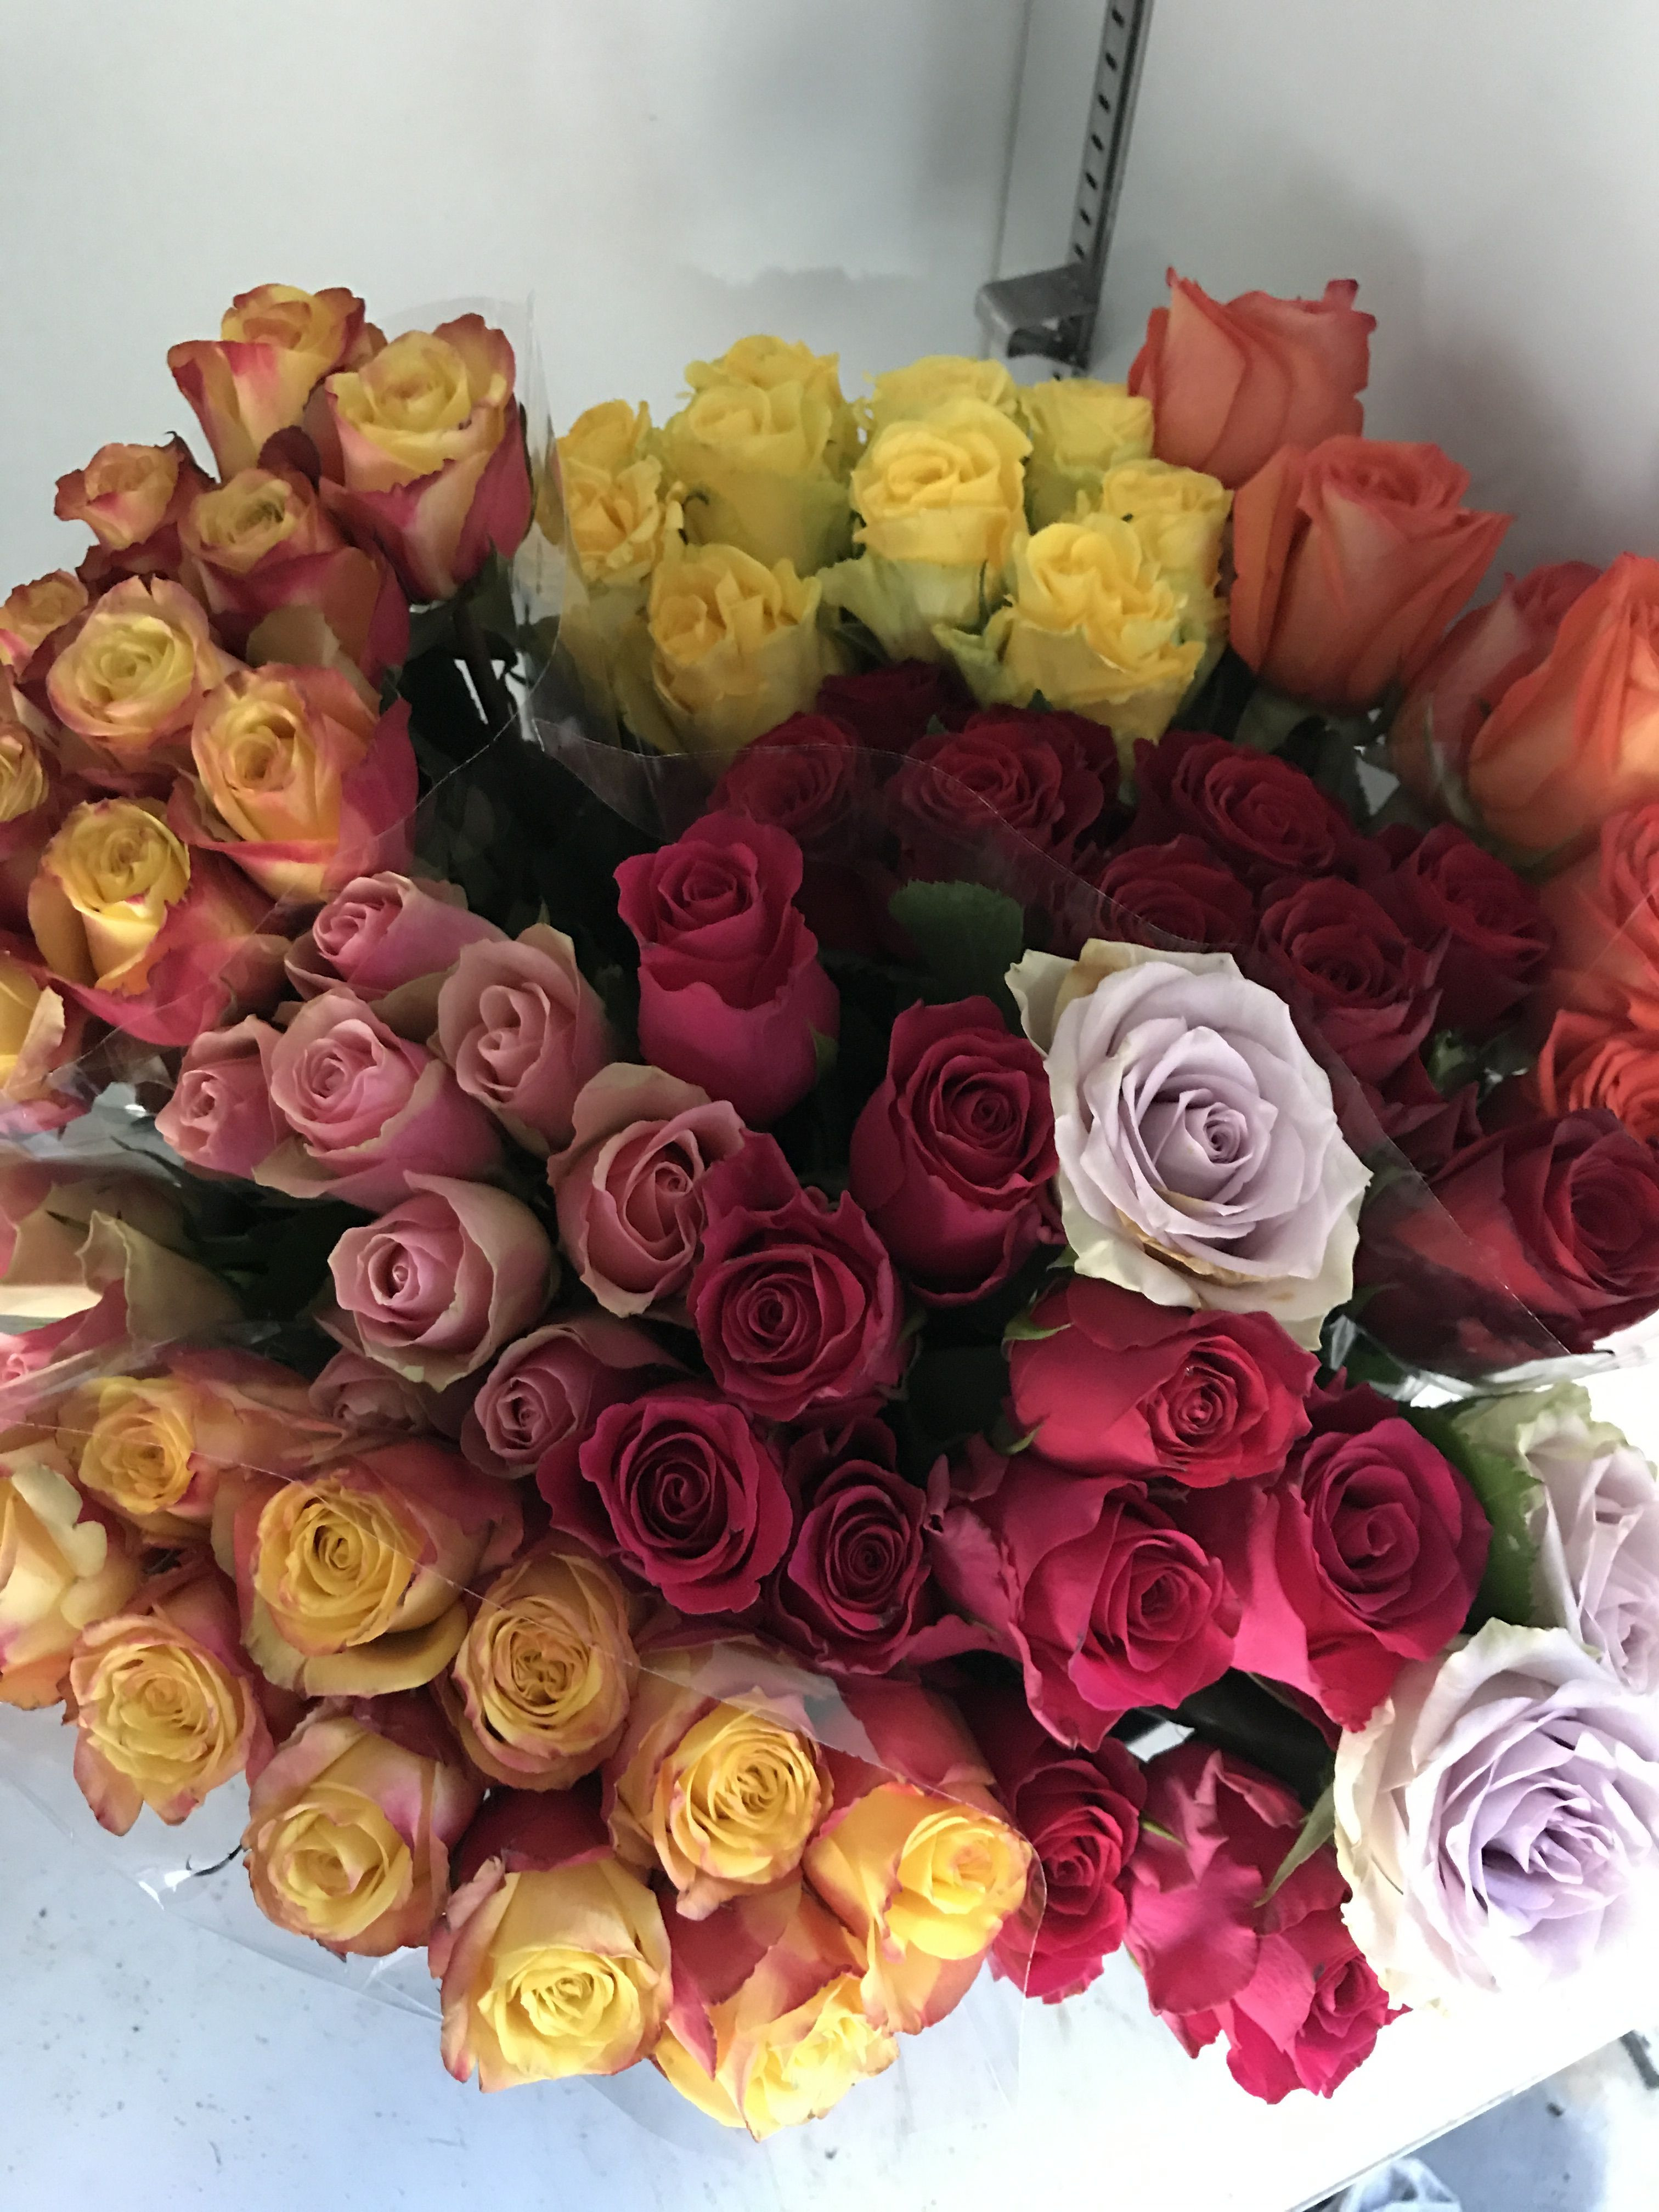 Blooms ly have a huge selection of the cheap wholesale flowers but these are NOT